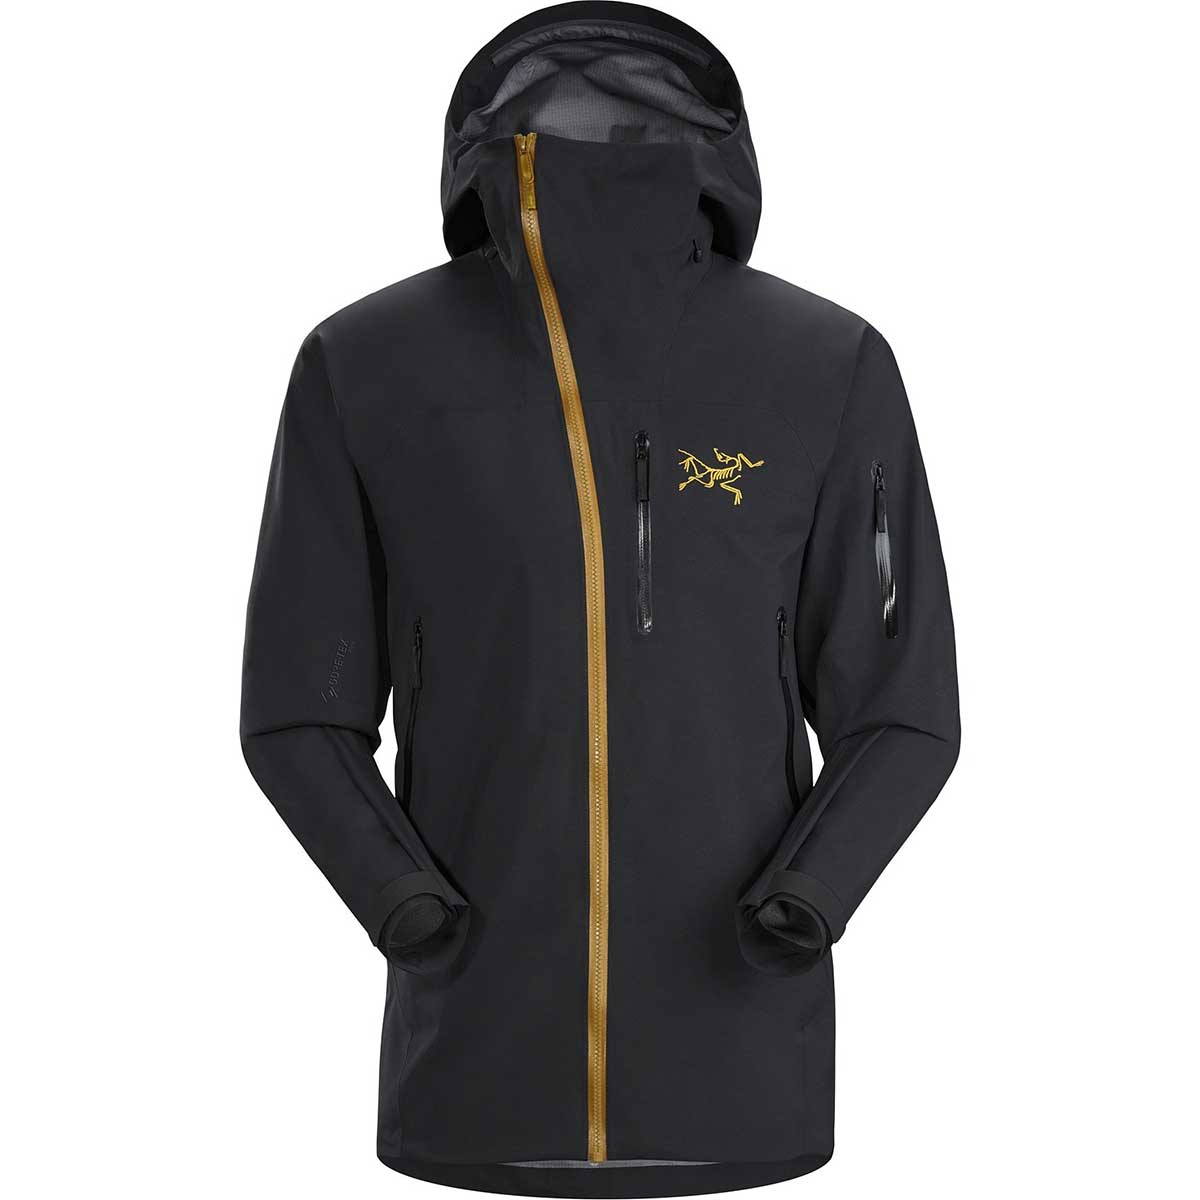 Arcteryx men's Sidewinder Jacket in 24K Black front view